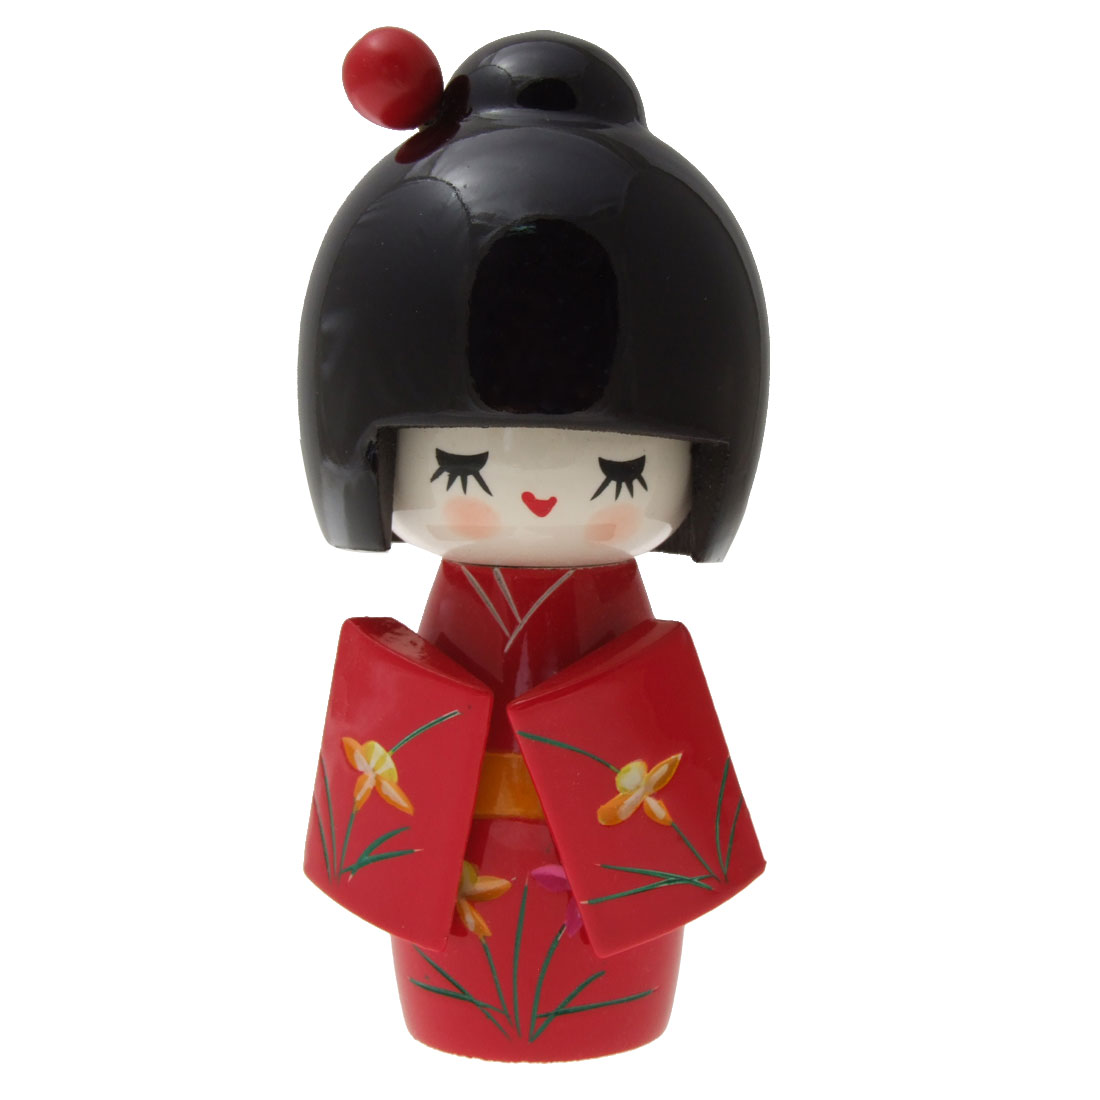 Japanese Kimono Kokeshi Doll Toy Desk Desktop Wooden Smiling Girl Ornament Red